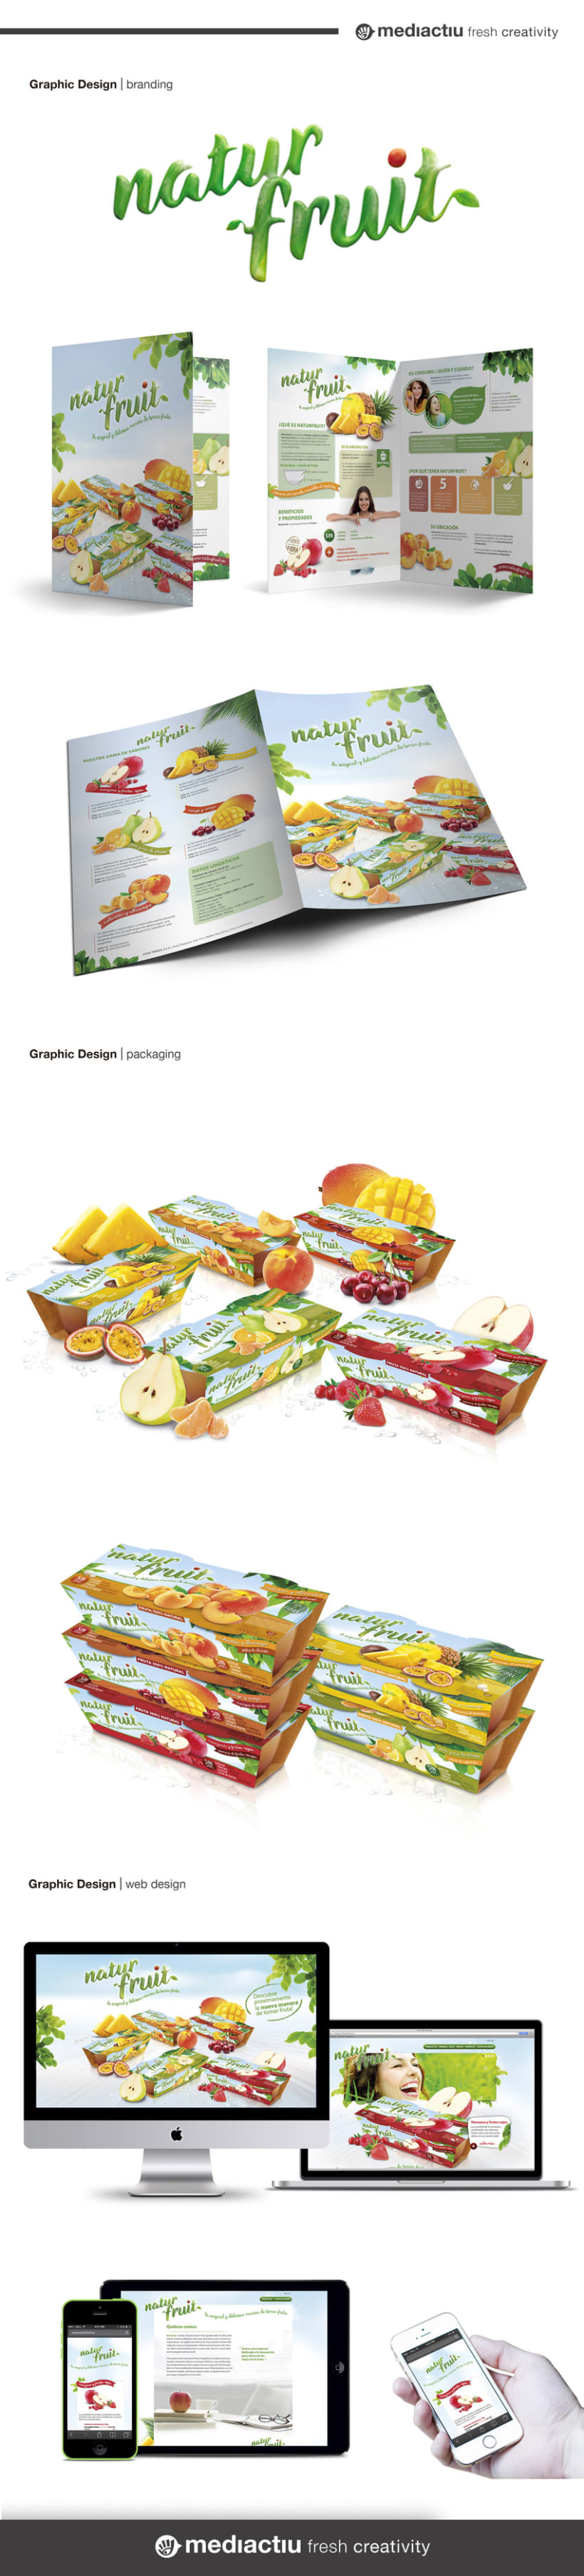 Branding, editorial, packaging, web design. Proyecto global Naturfruit 0